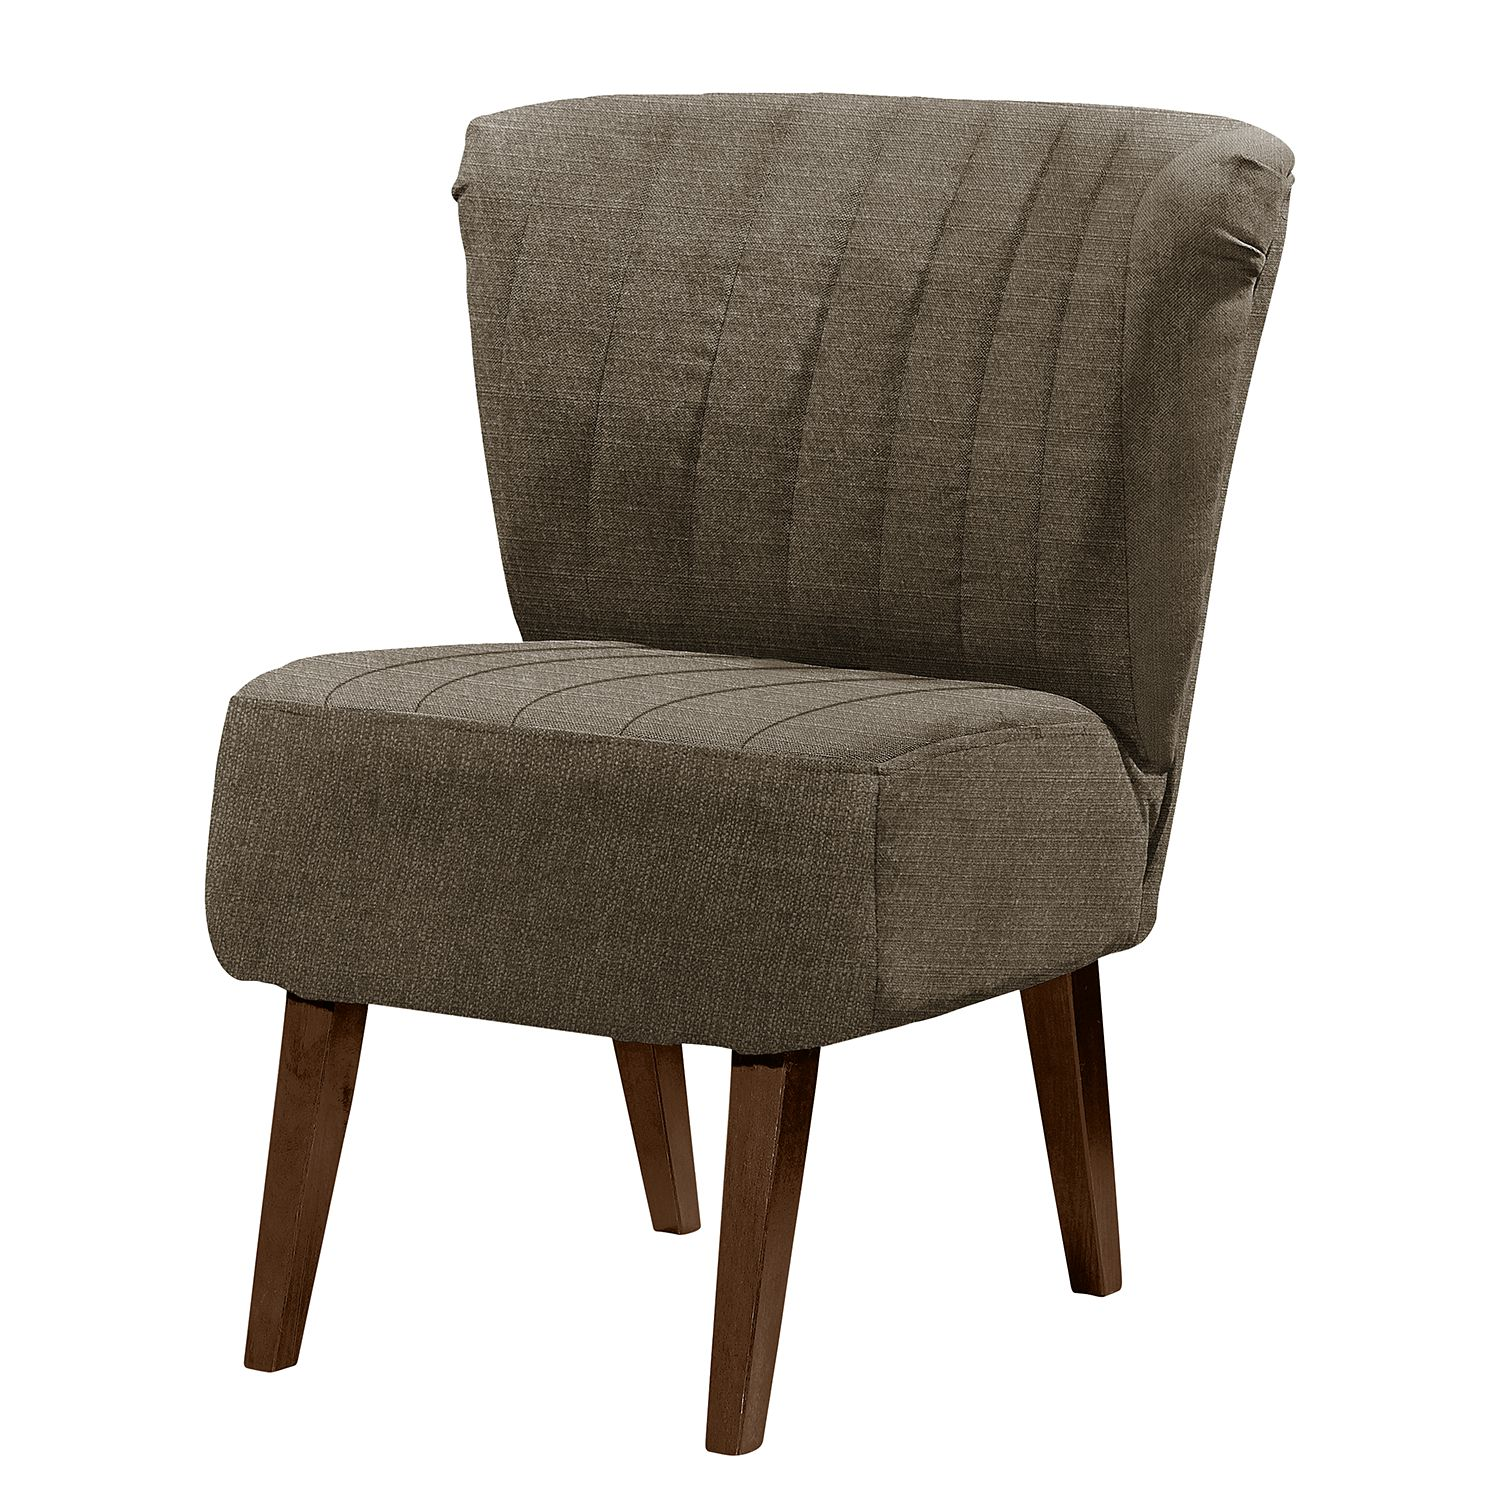 Fauteuil Rotnes I - Tissu - Gris marron, mooved